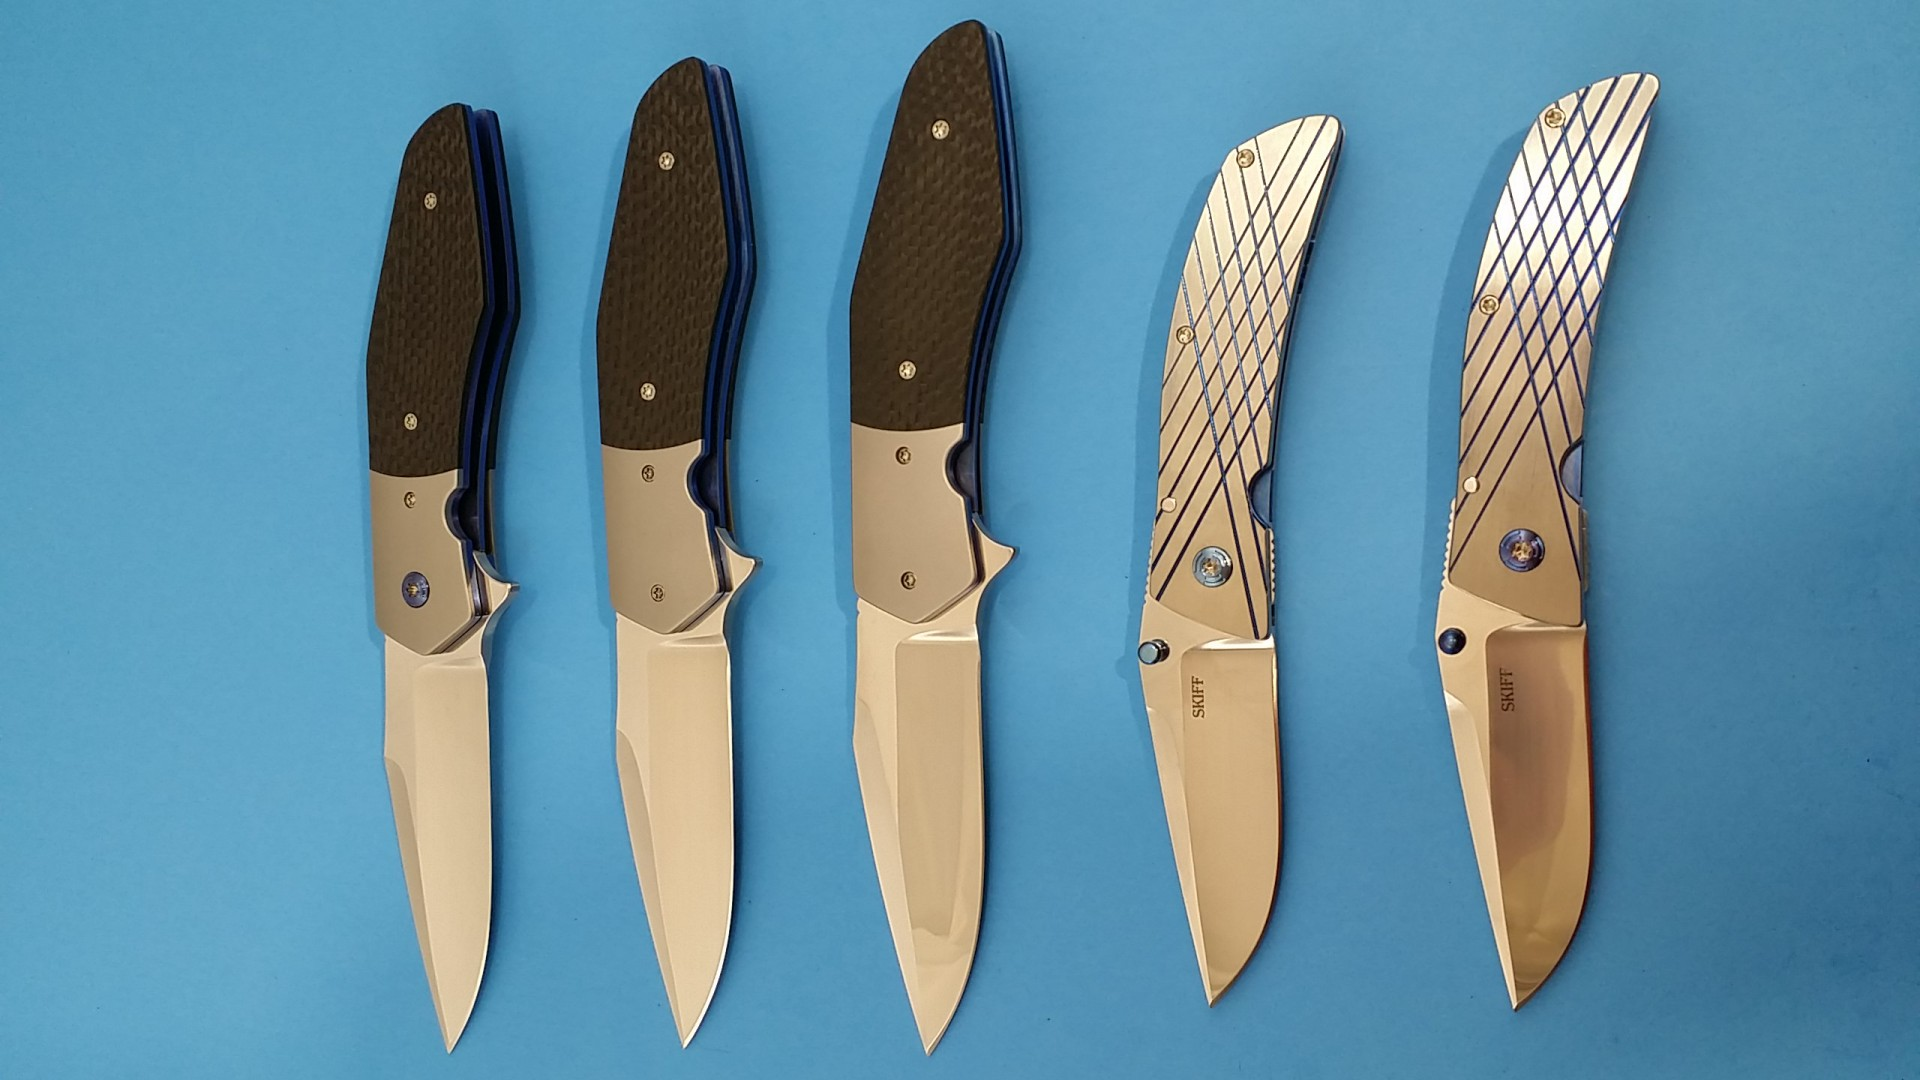 Steven Skiff Knives group shot